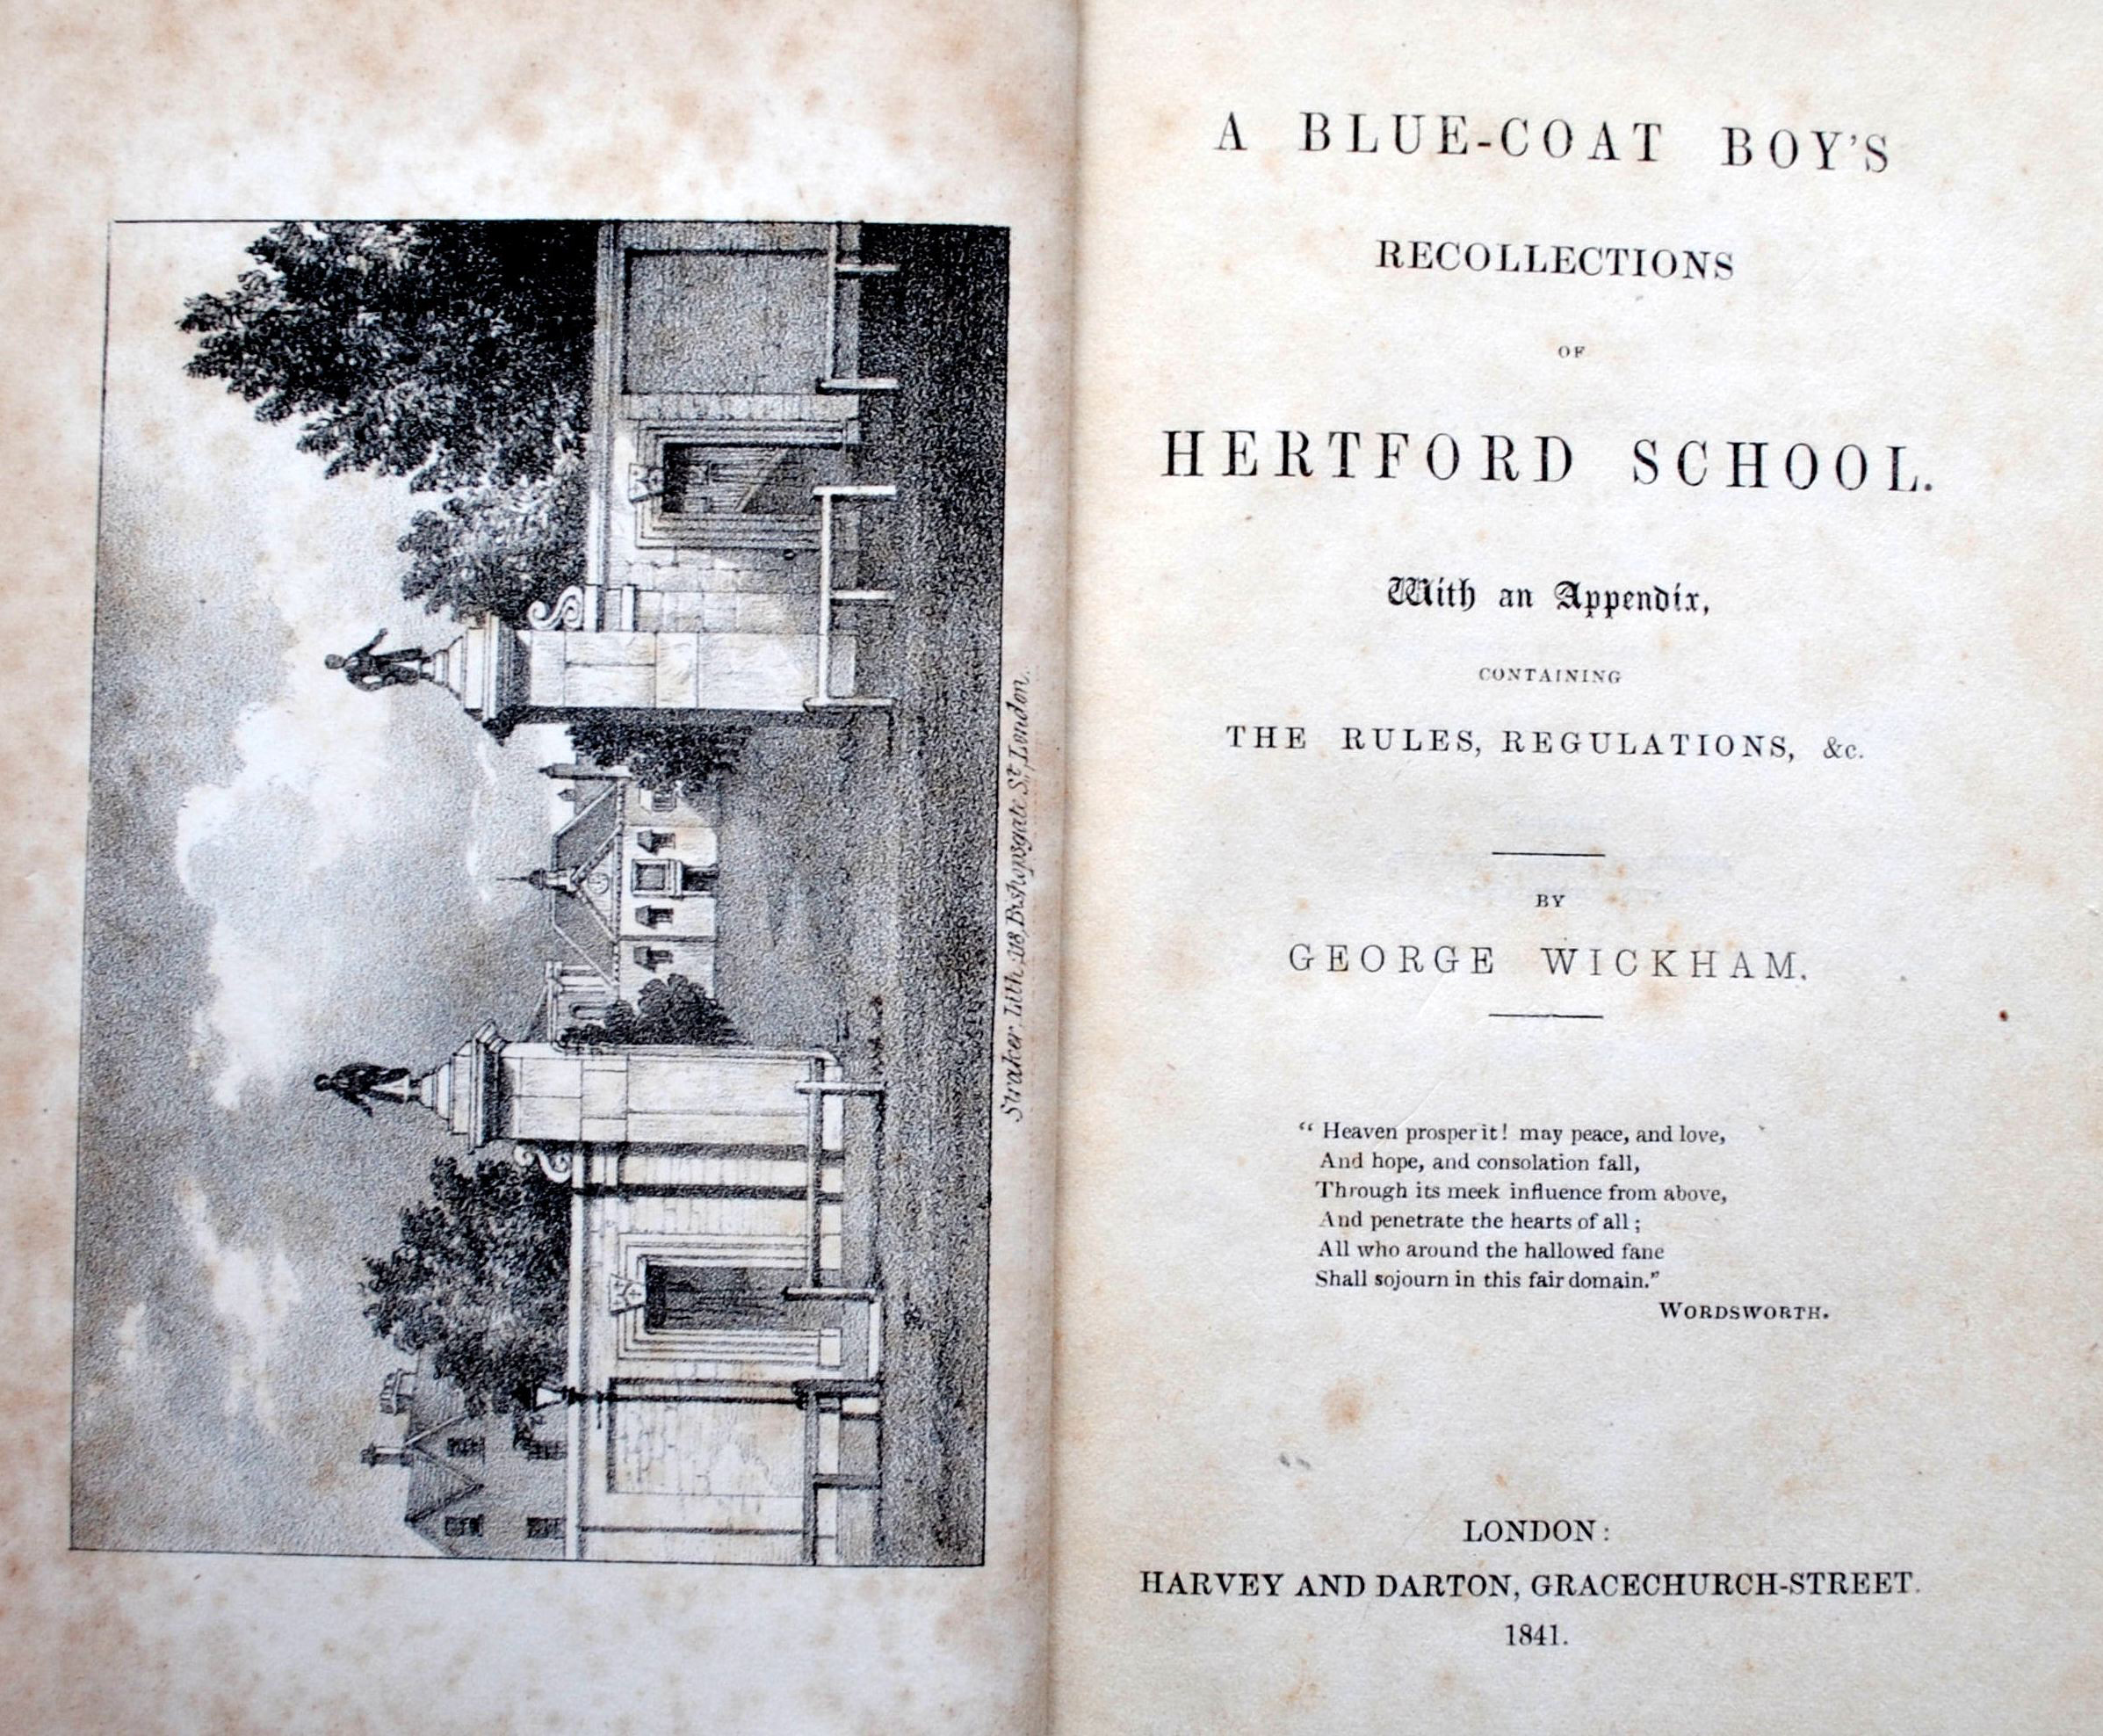 A Blue-coat Boy's Recollections of Hertford School 1841